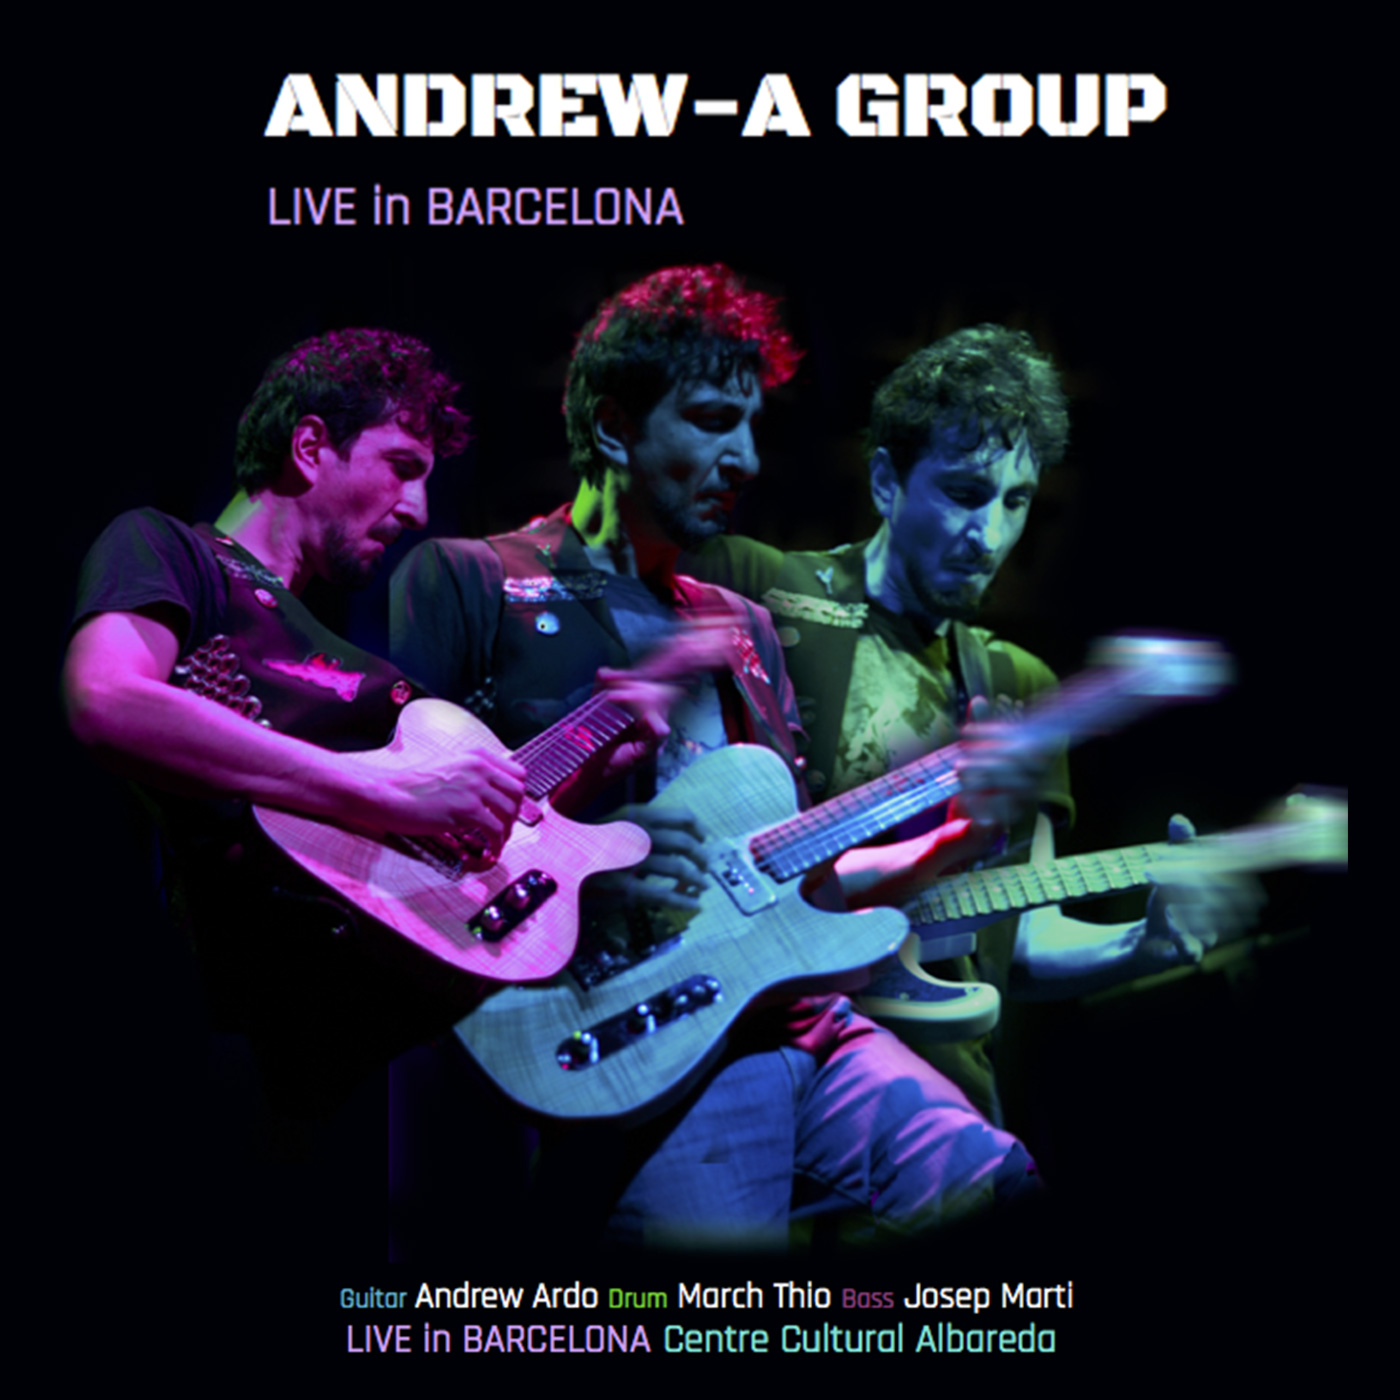 Andrew-A - Live in Barcelona